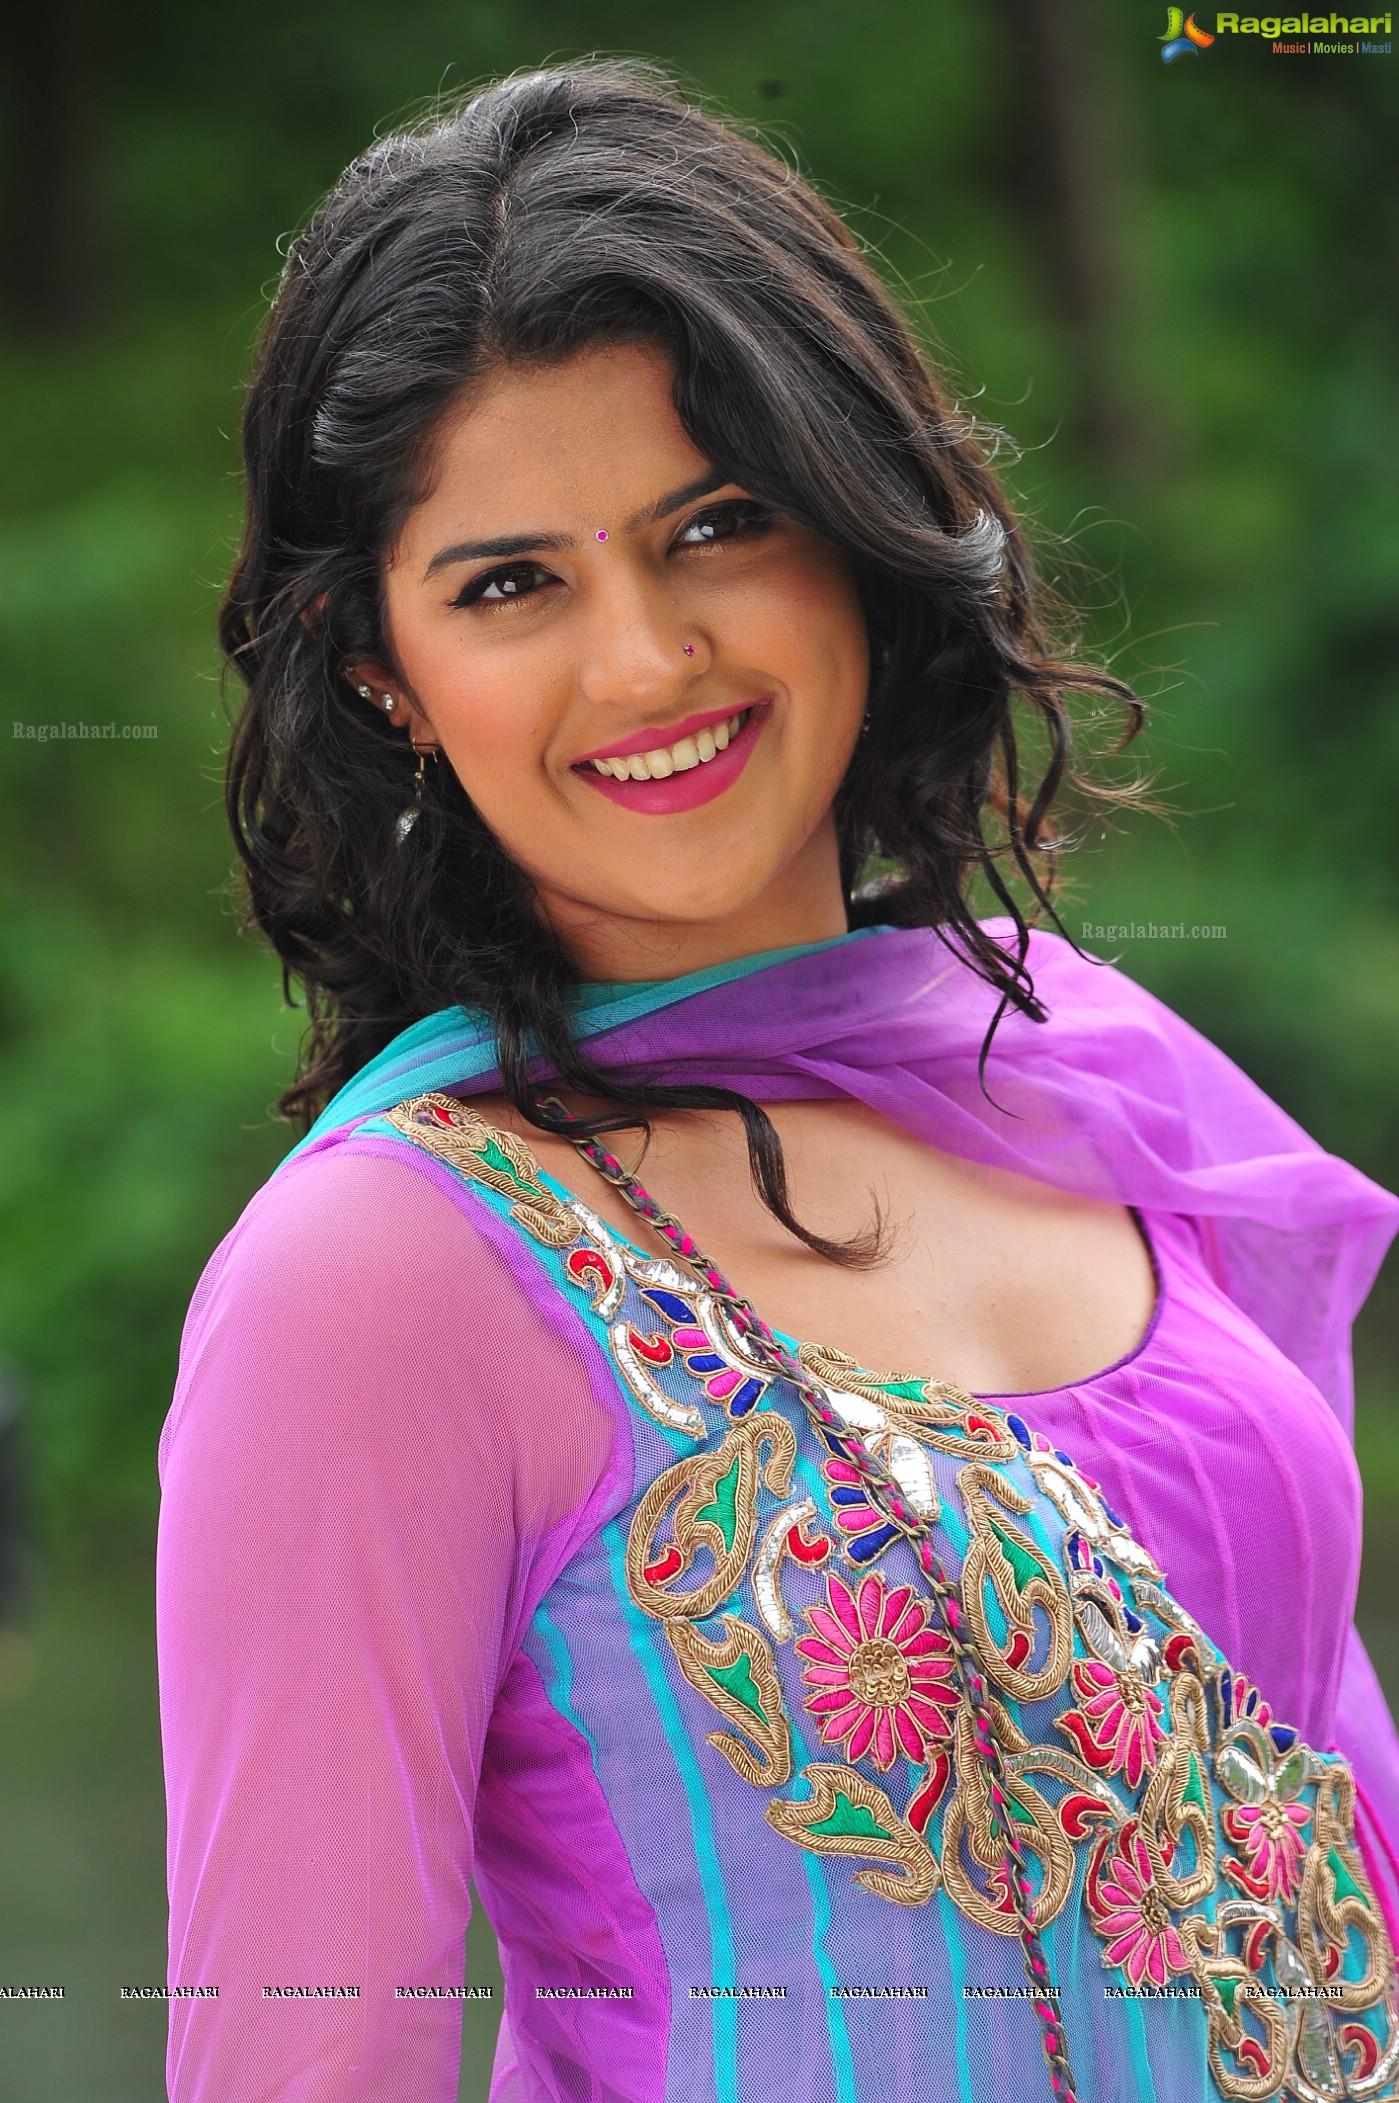 deeksha seth (posters) image 23 | latest tollywood actor photos